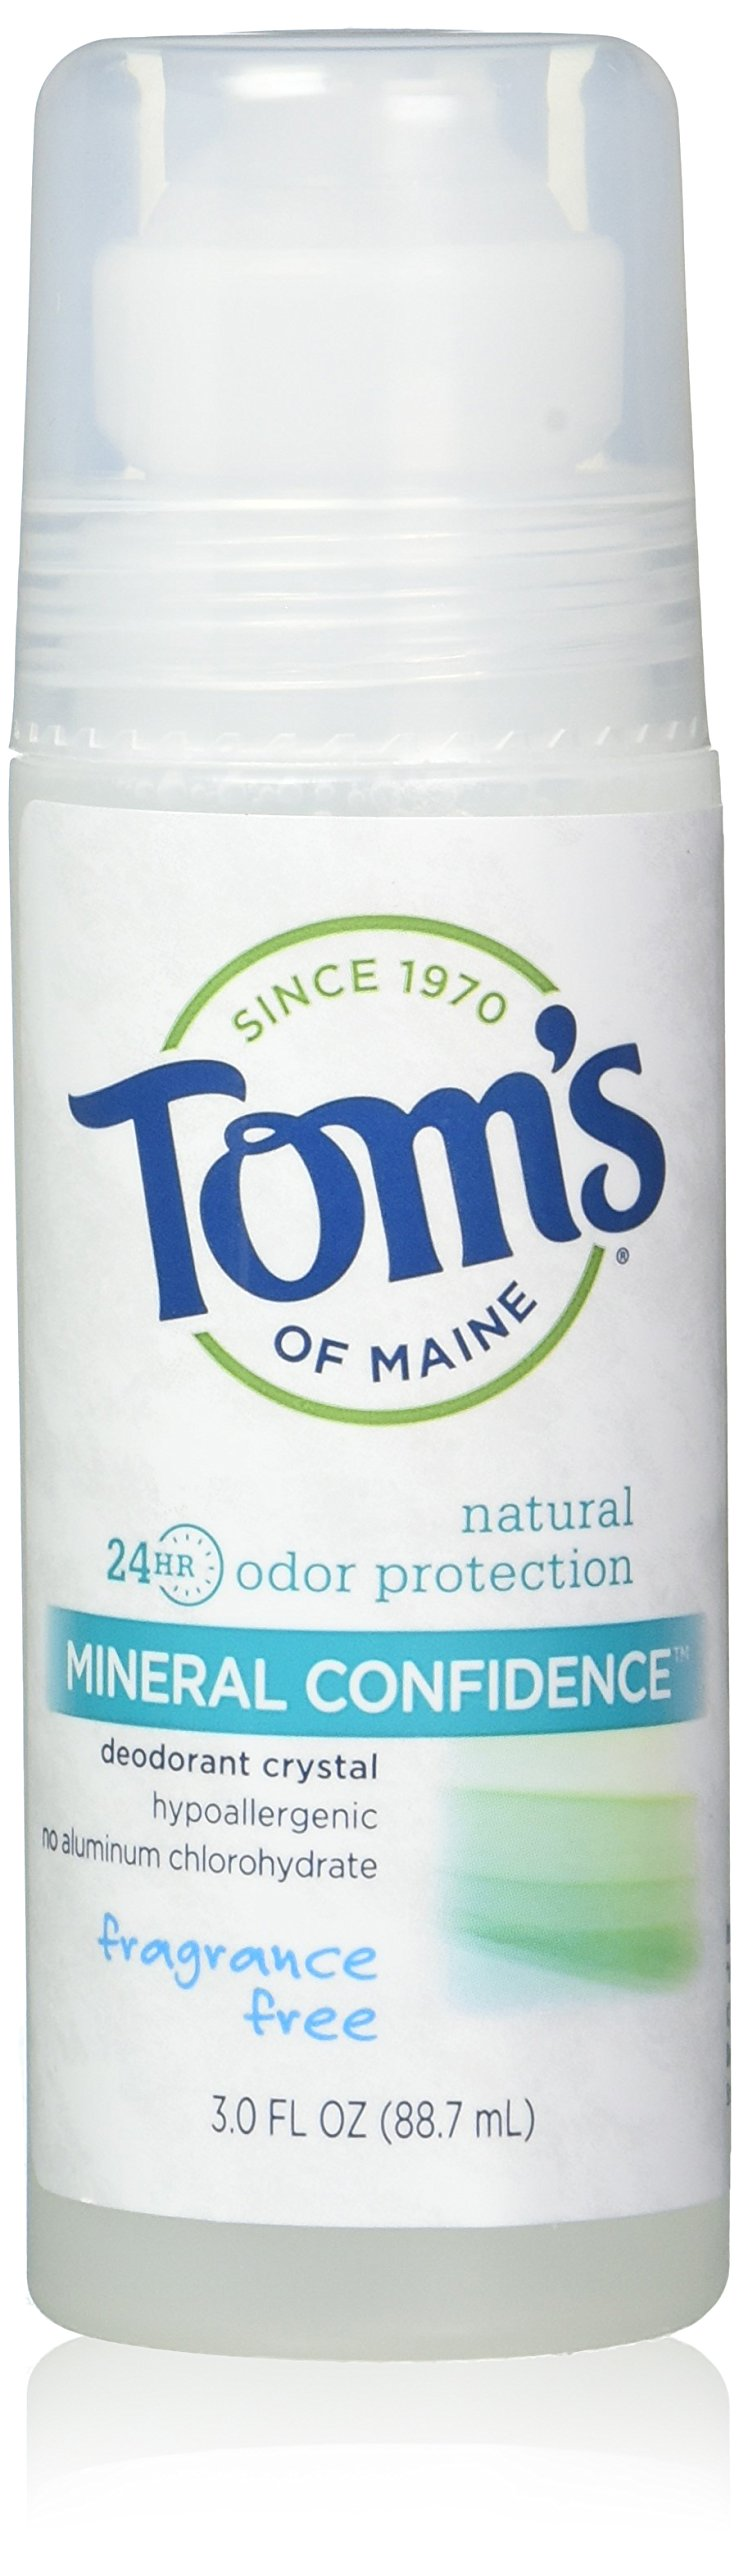 Tom's of Maine Natural Confidence Roll-On Deodorant, Fragrance-Free, 3 Ounce, (Pack of 6) by Tom's of Maine